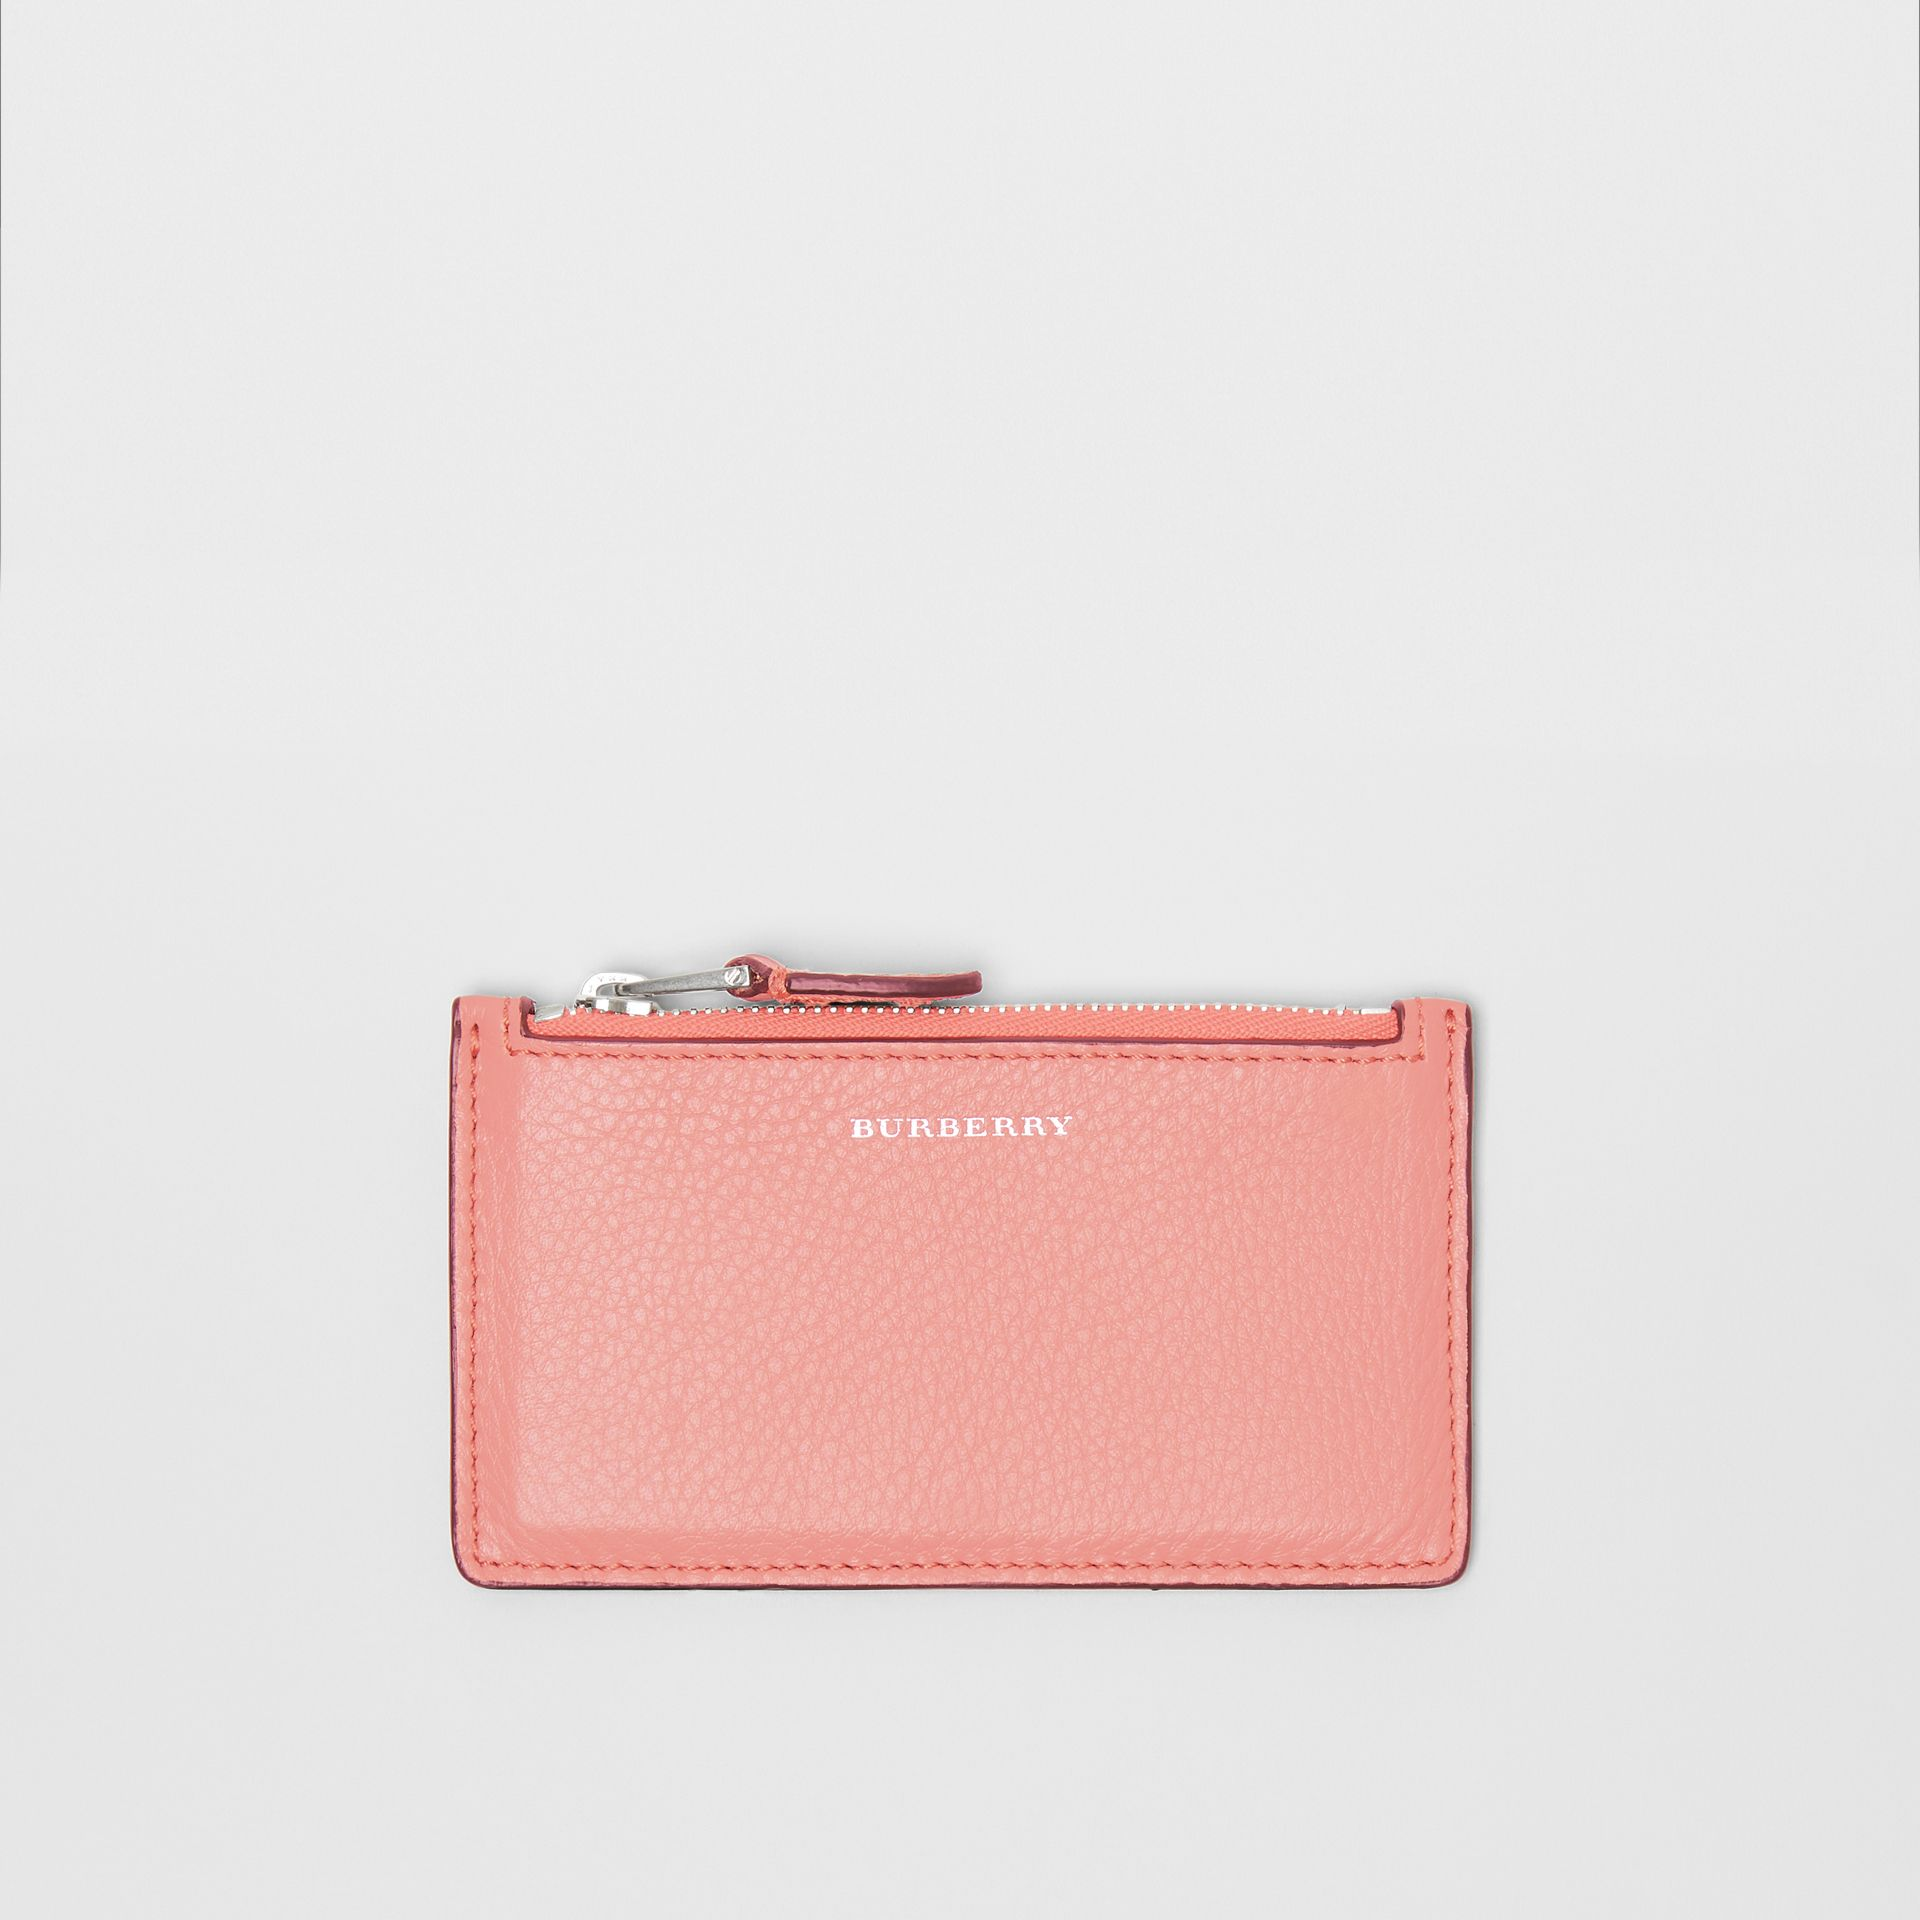 Two-tone Leather Zip Card Case in Dusty Rose - Women | Burberry Australia - gallery image 0